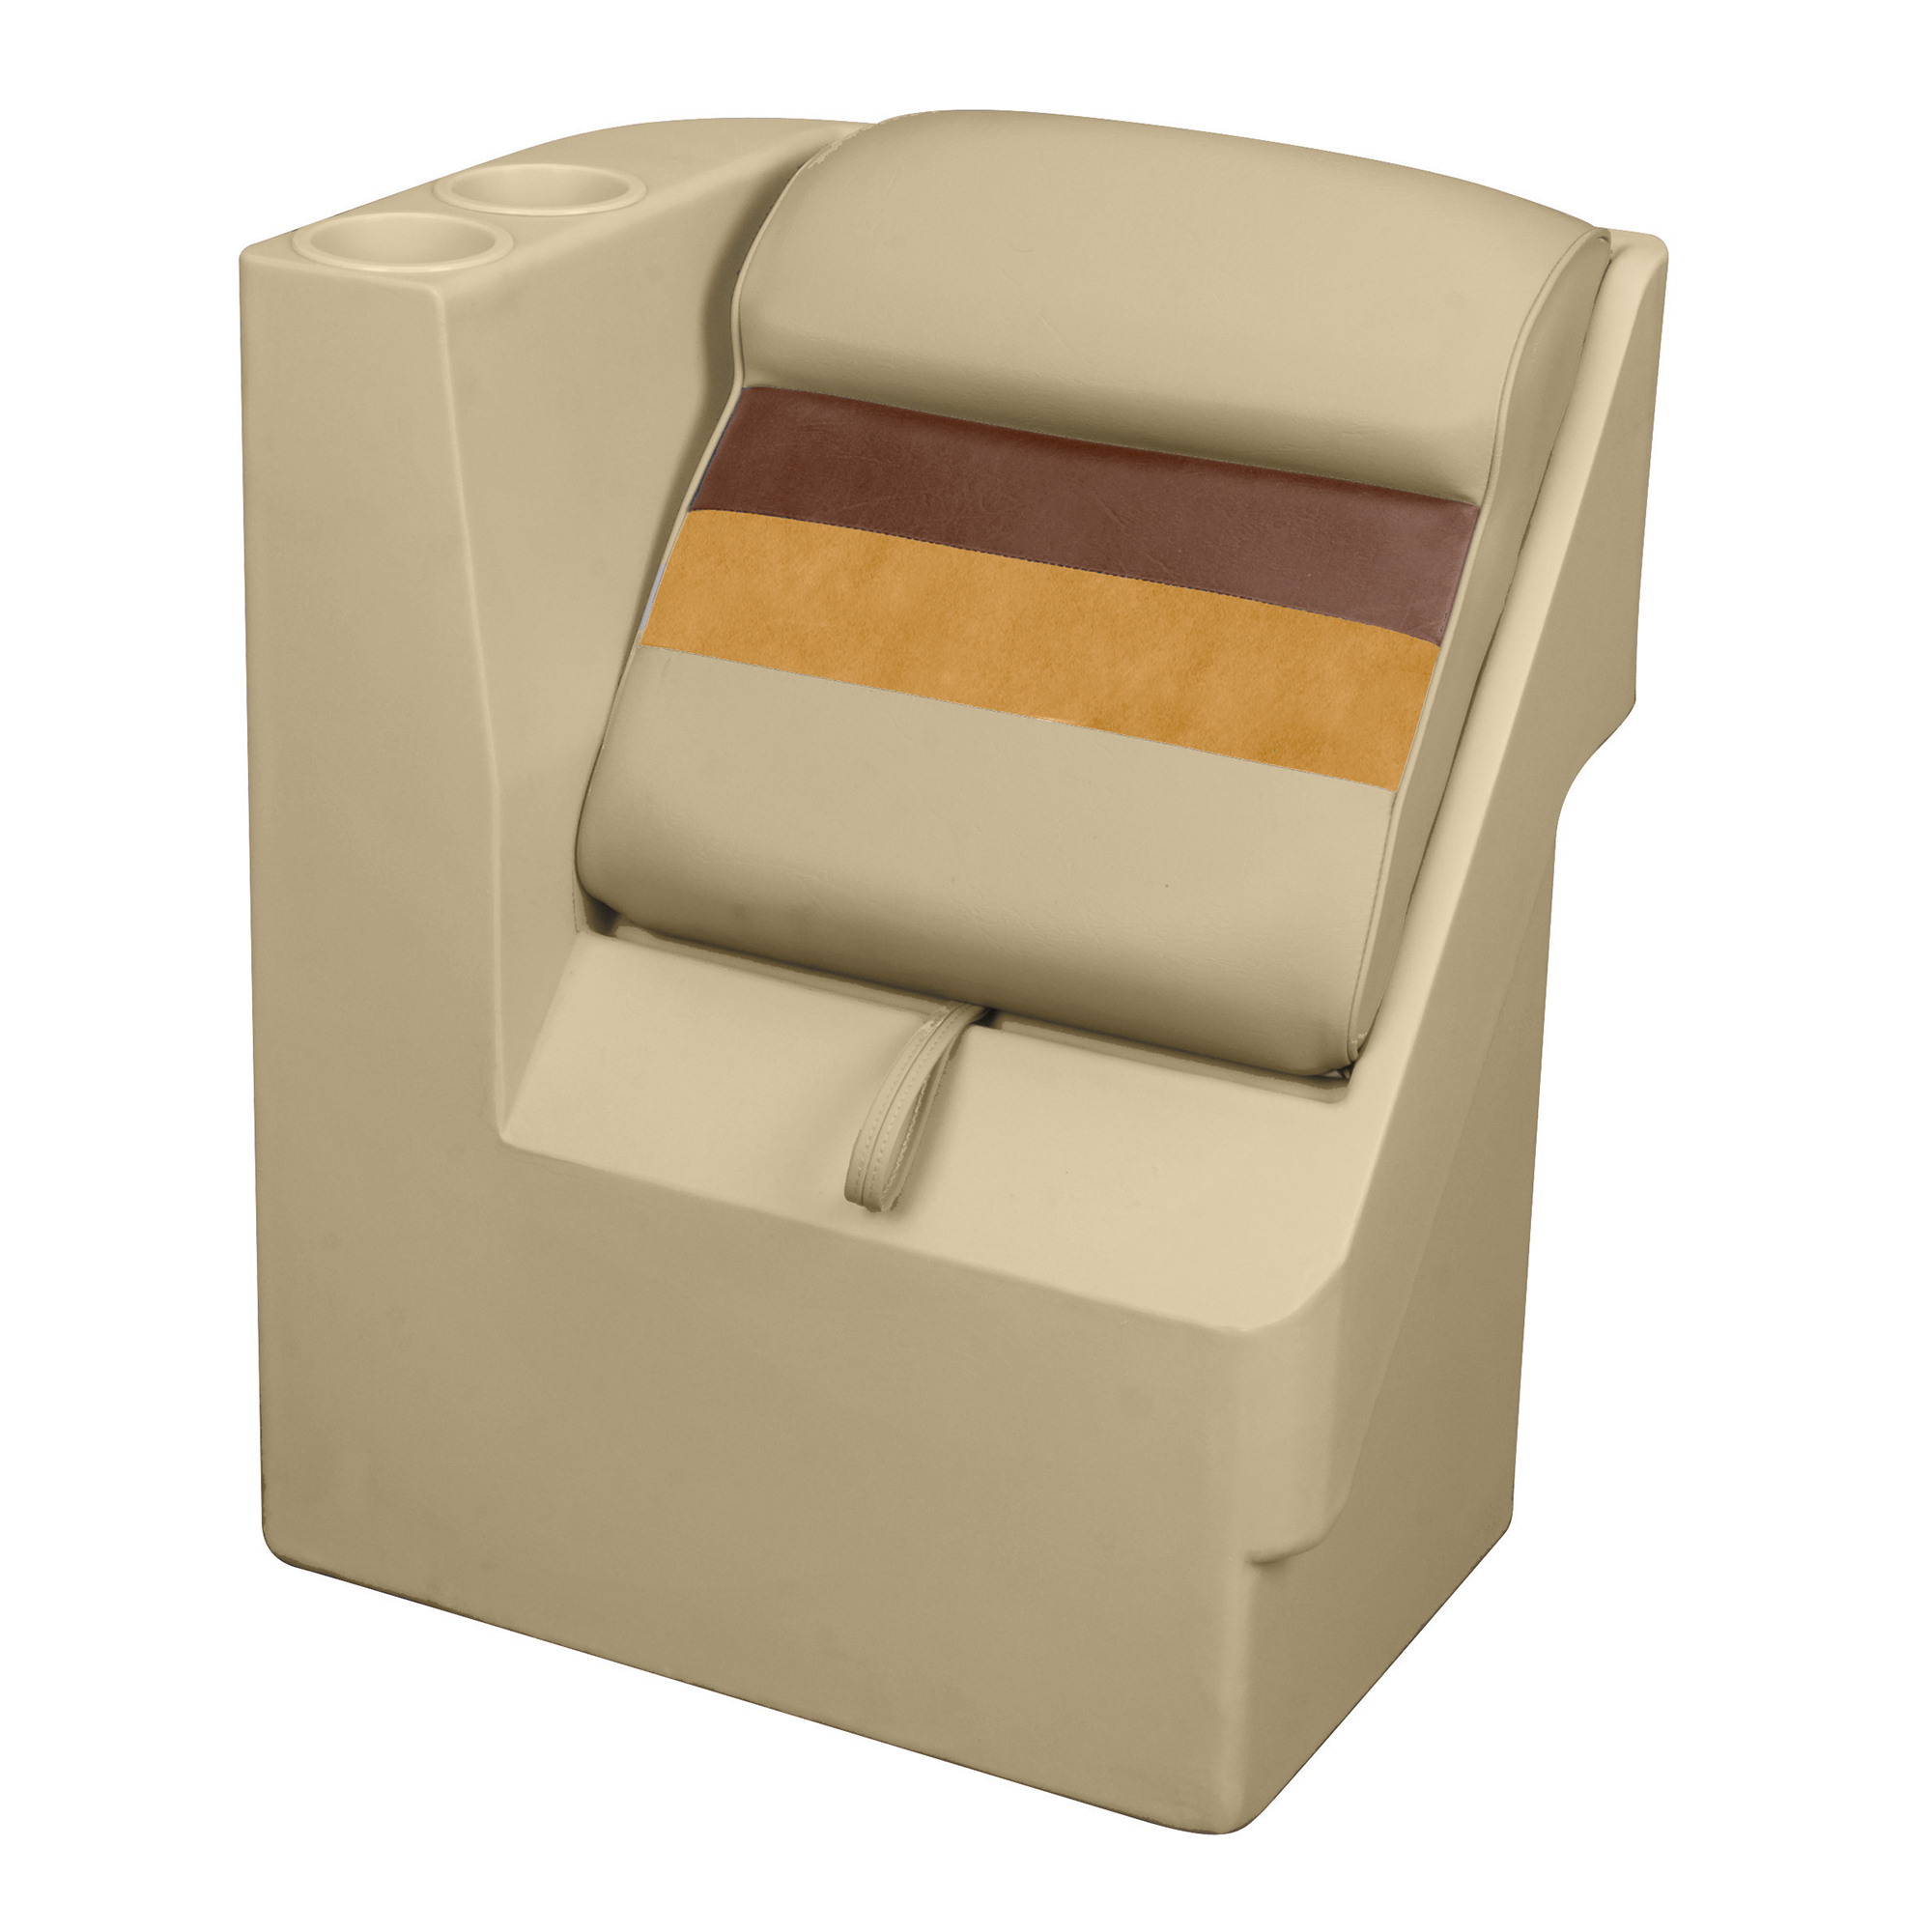 Toonmate Deluxe Lean-Back Lounge Seat, Right Side